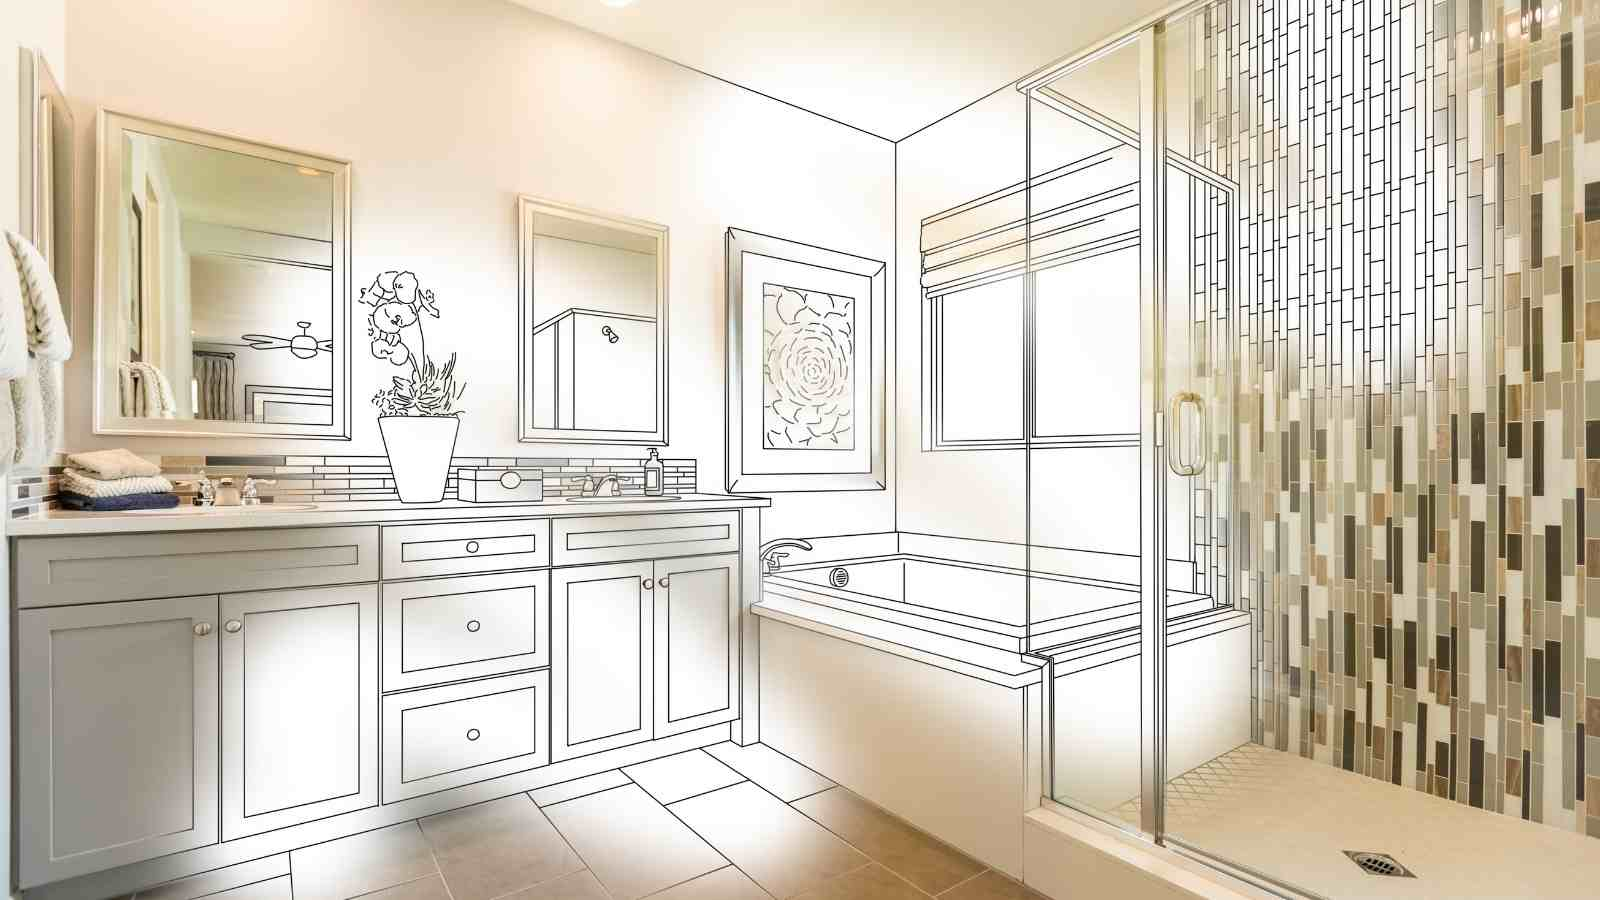 35 amazing bathroom remodel diy ideas that give a stunning makeover to your bathroom Bathroom renovation design ideas